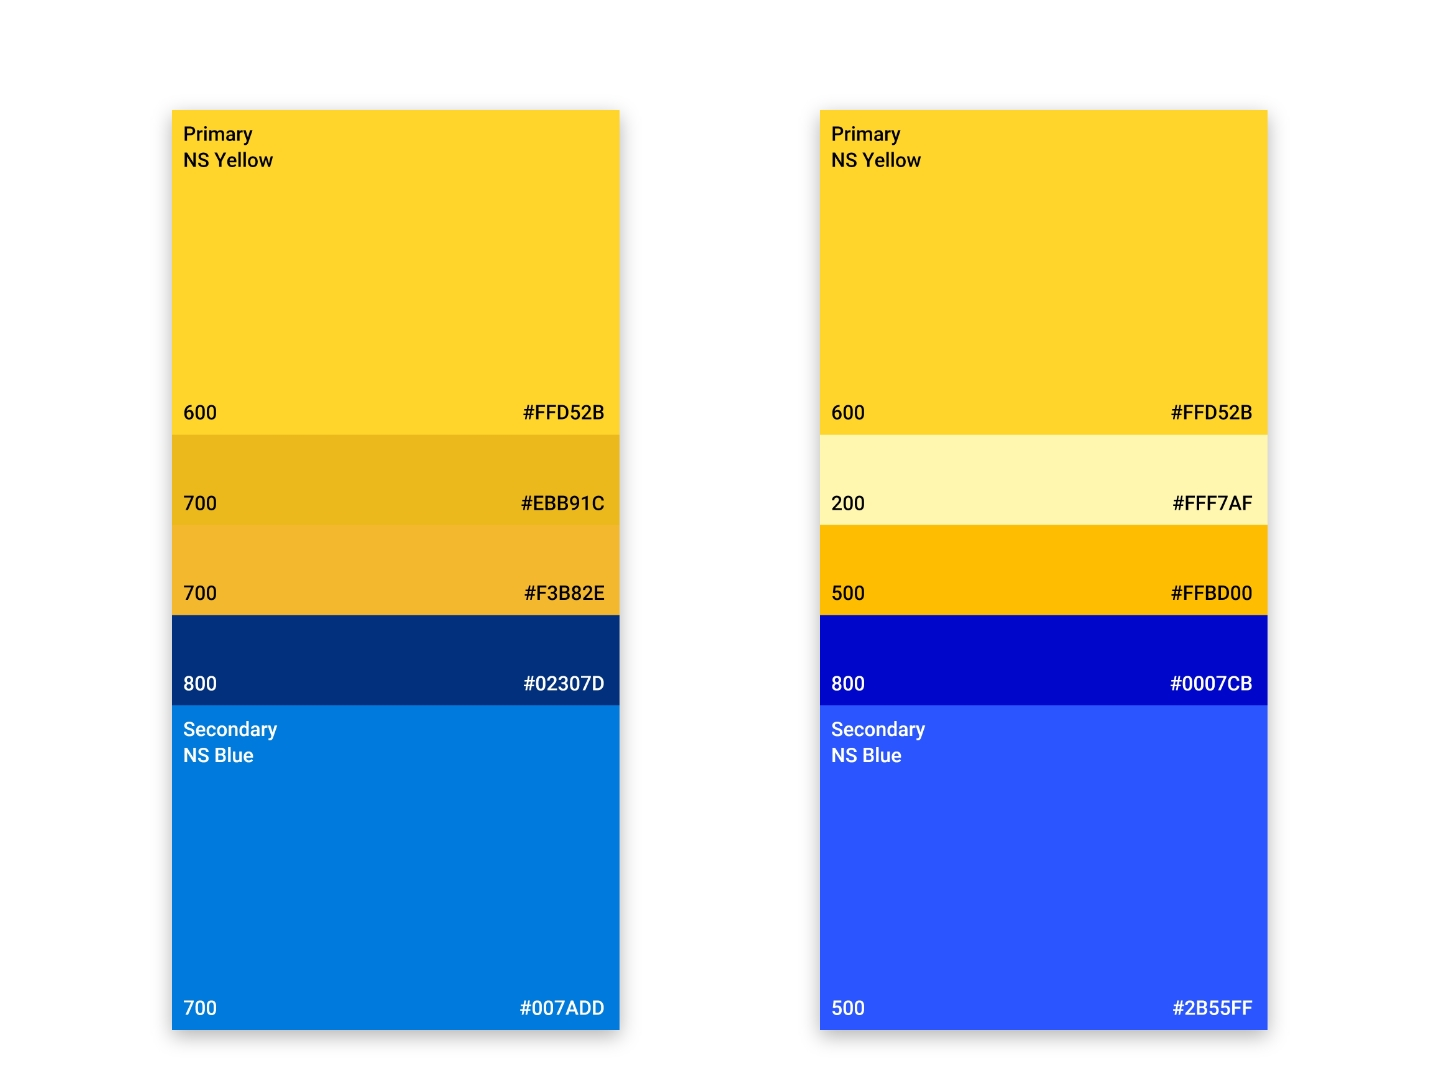 The old color palette on the left compared to the proposed one on the right.